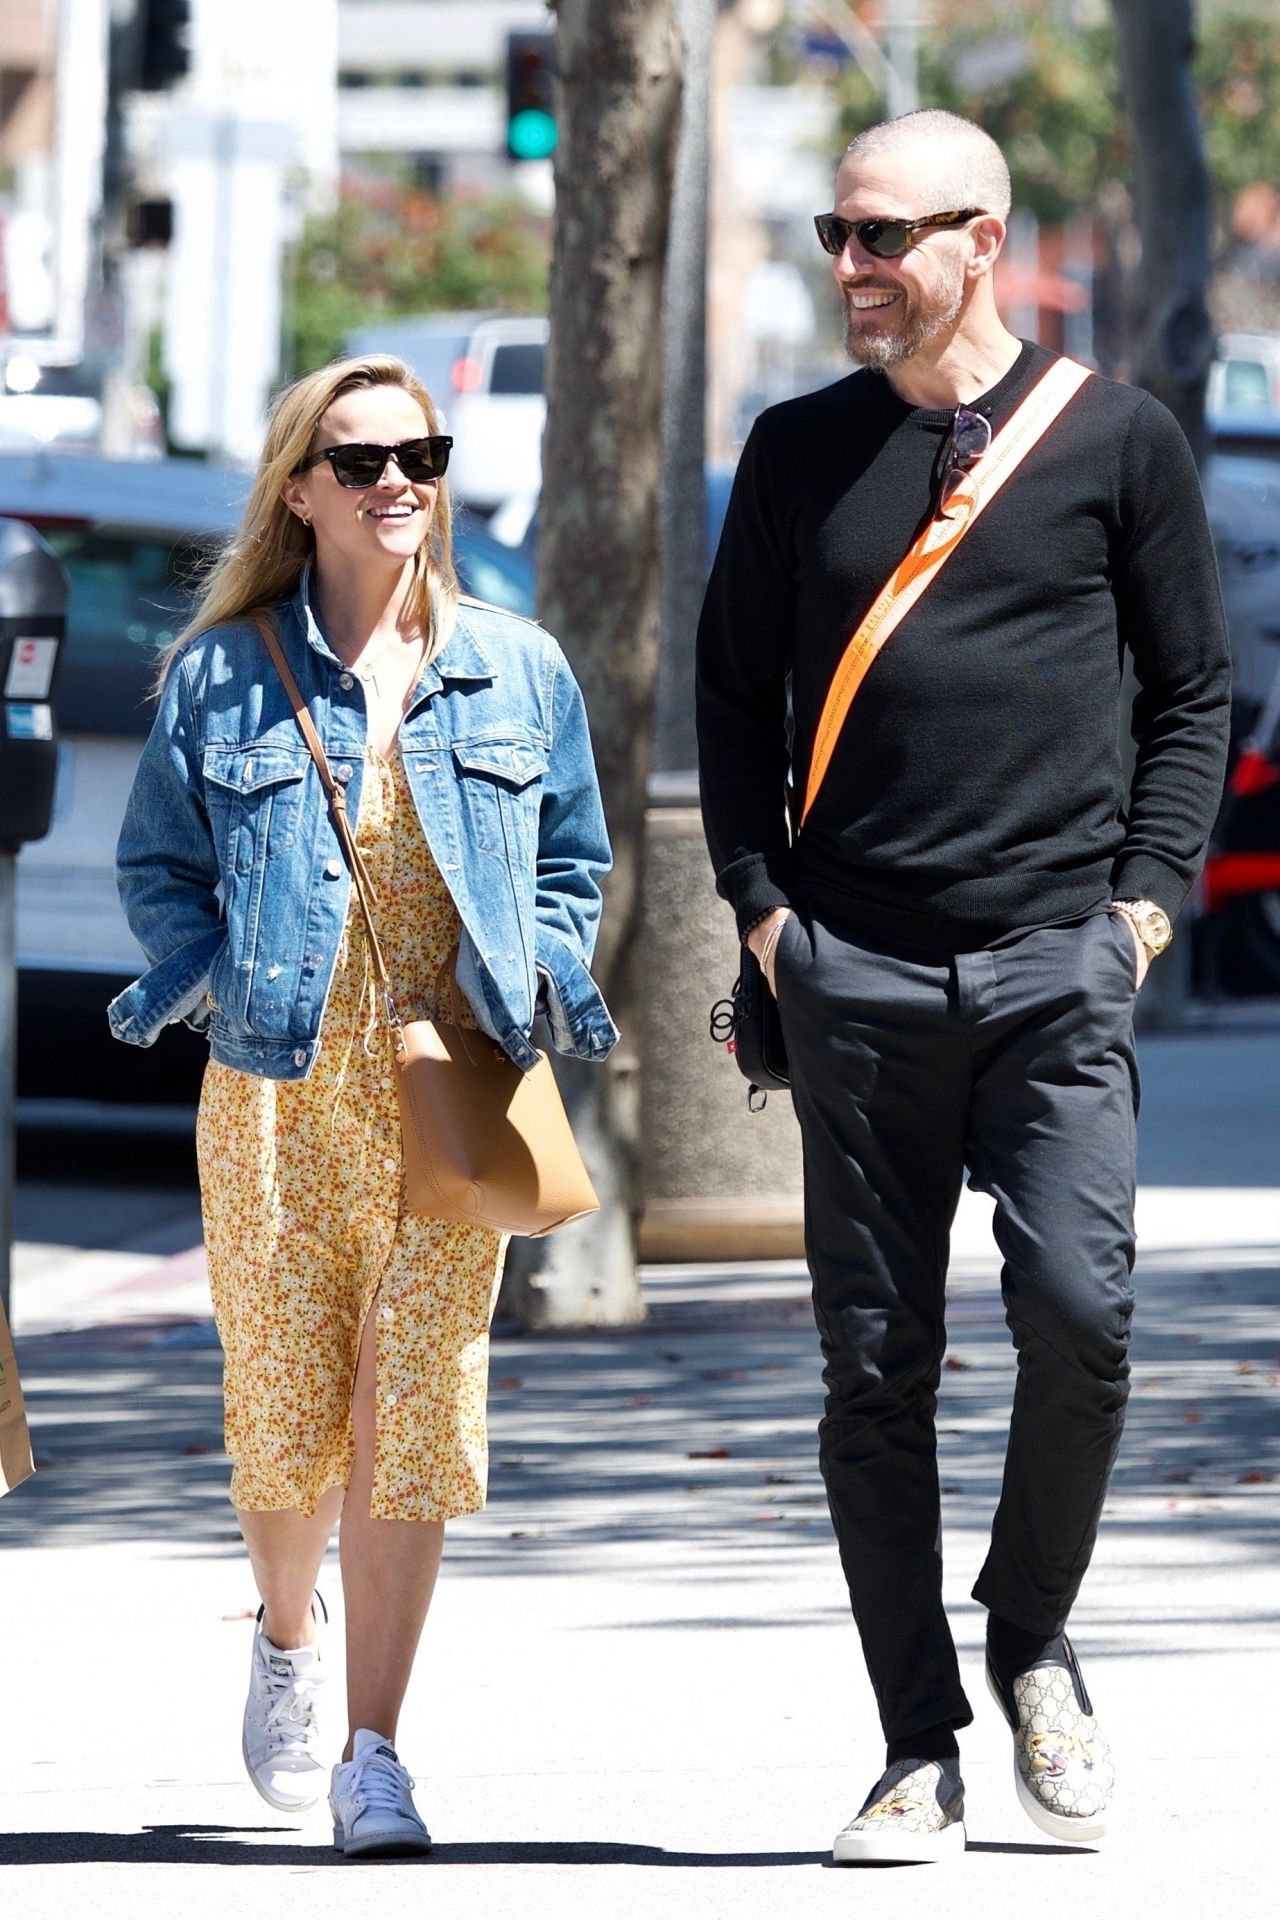 Reese Witherspoon Boyfriend Who Is Reese Dating Now